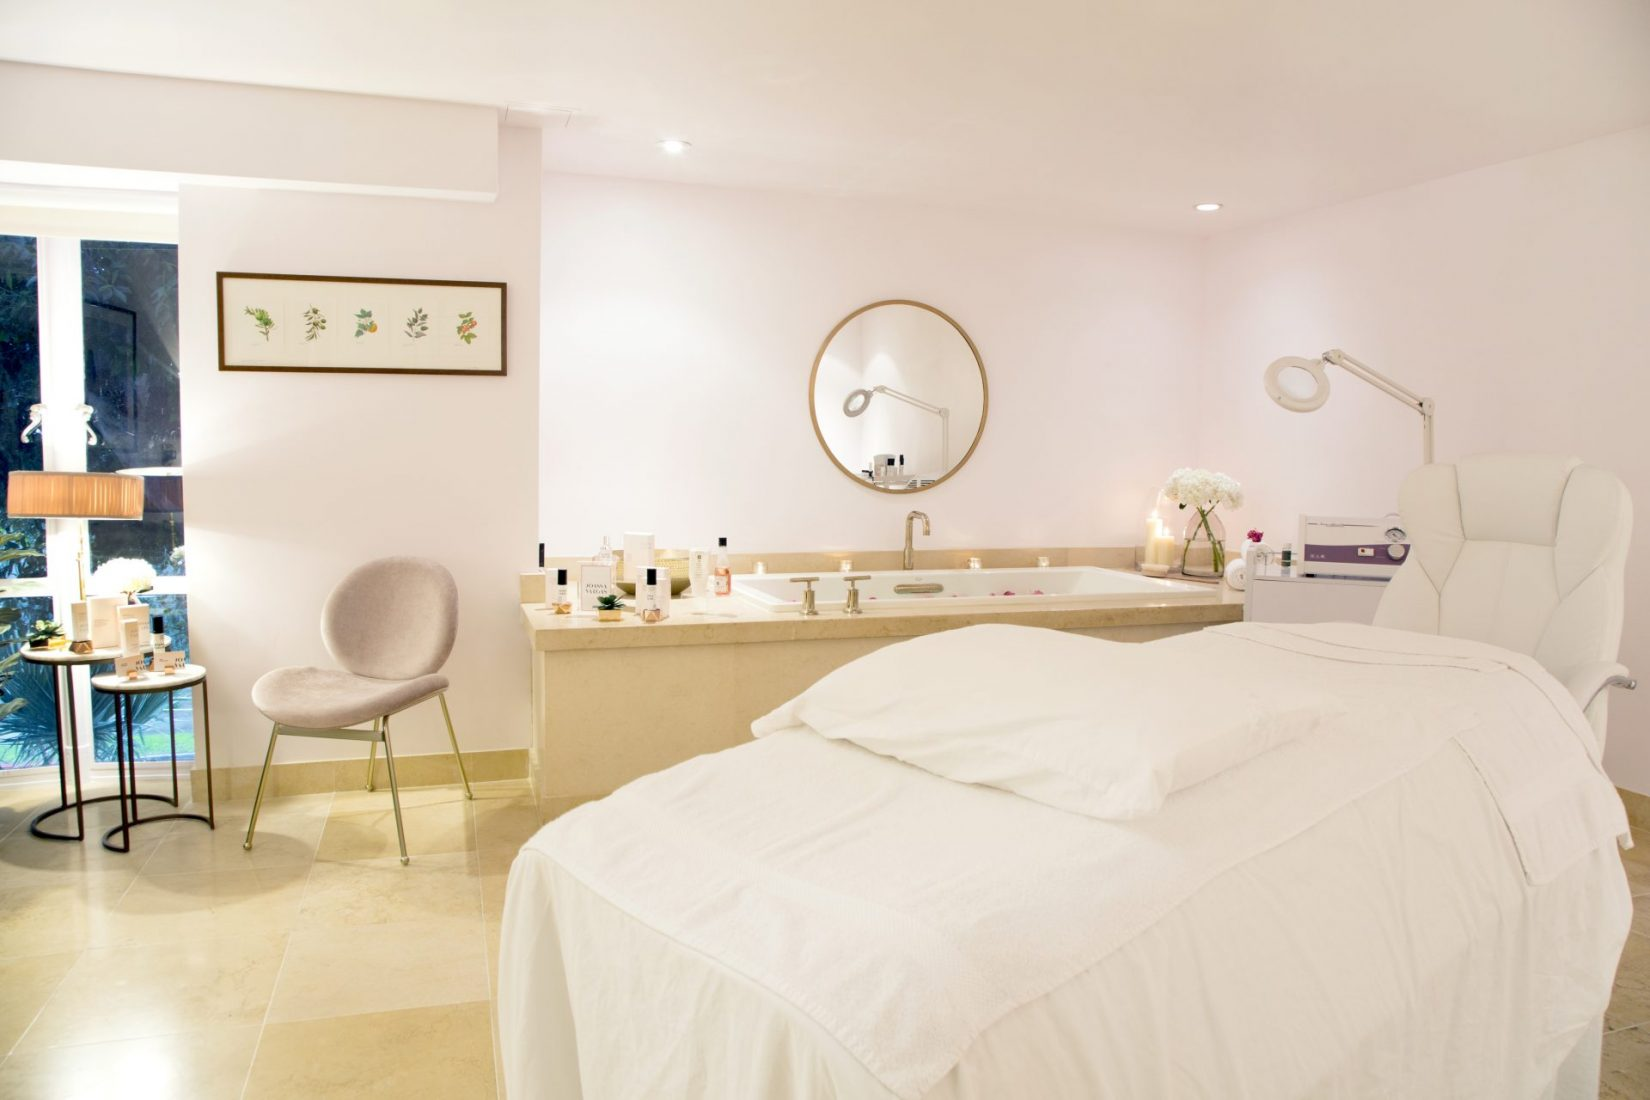 Get Ready to Glow with a Lymphatic Drainage Massage at Joanna Vargas Salon